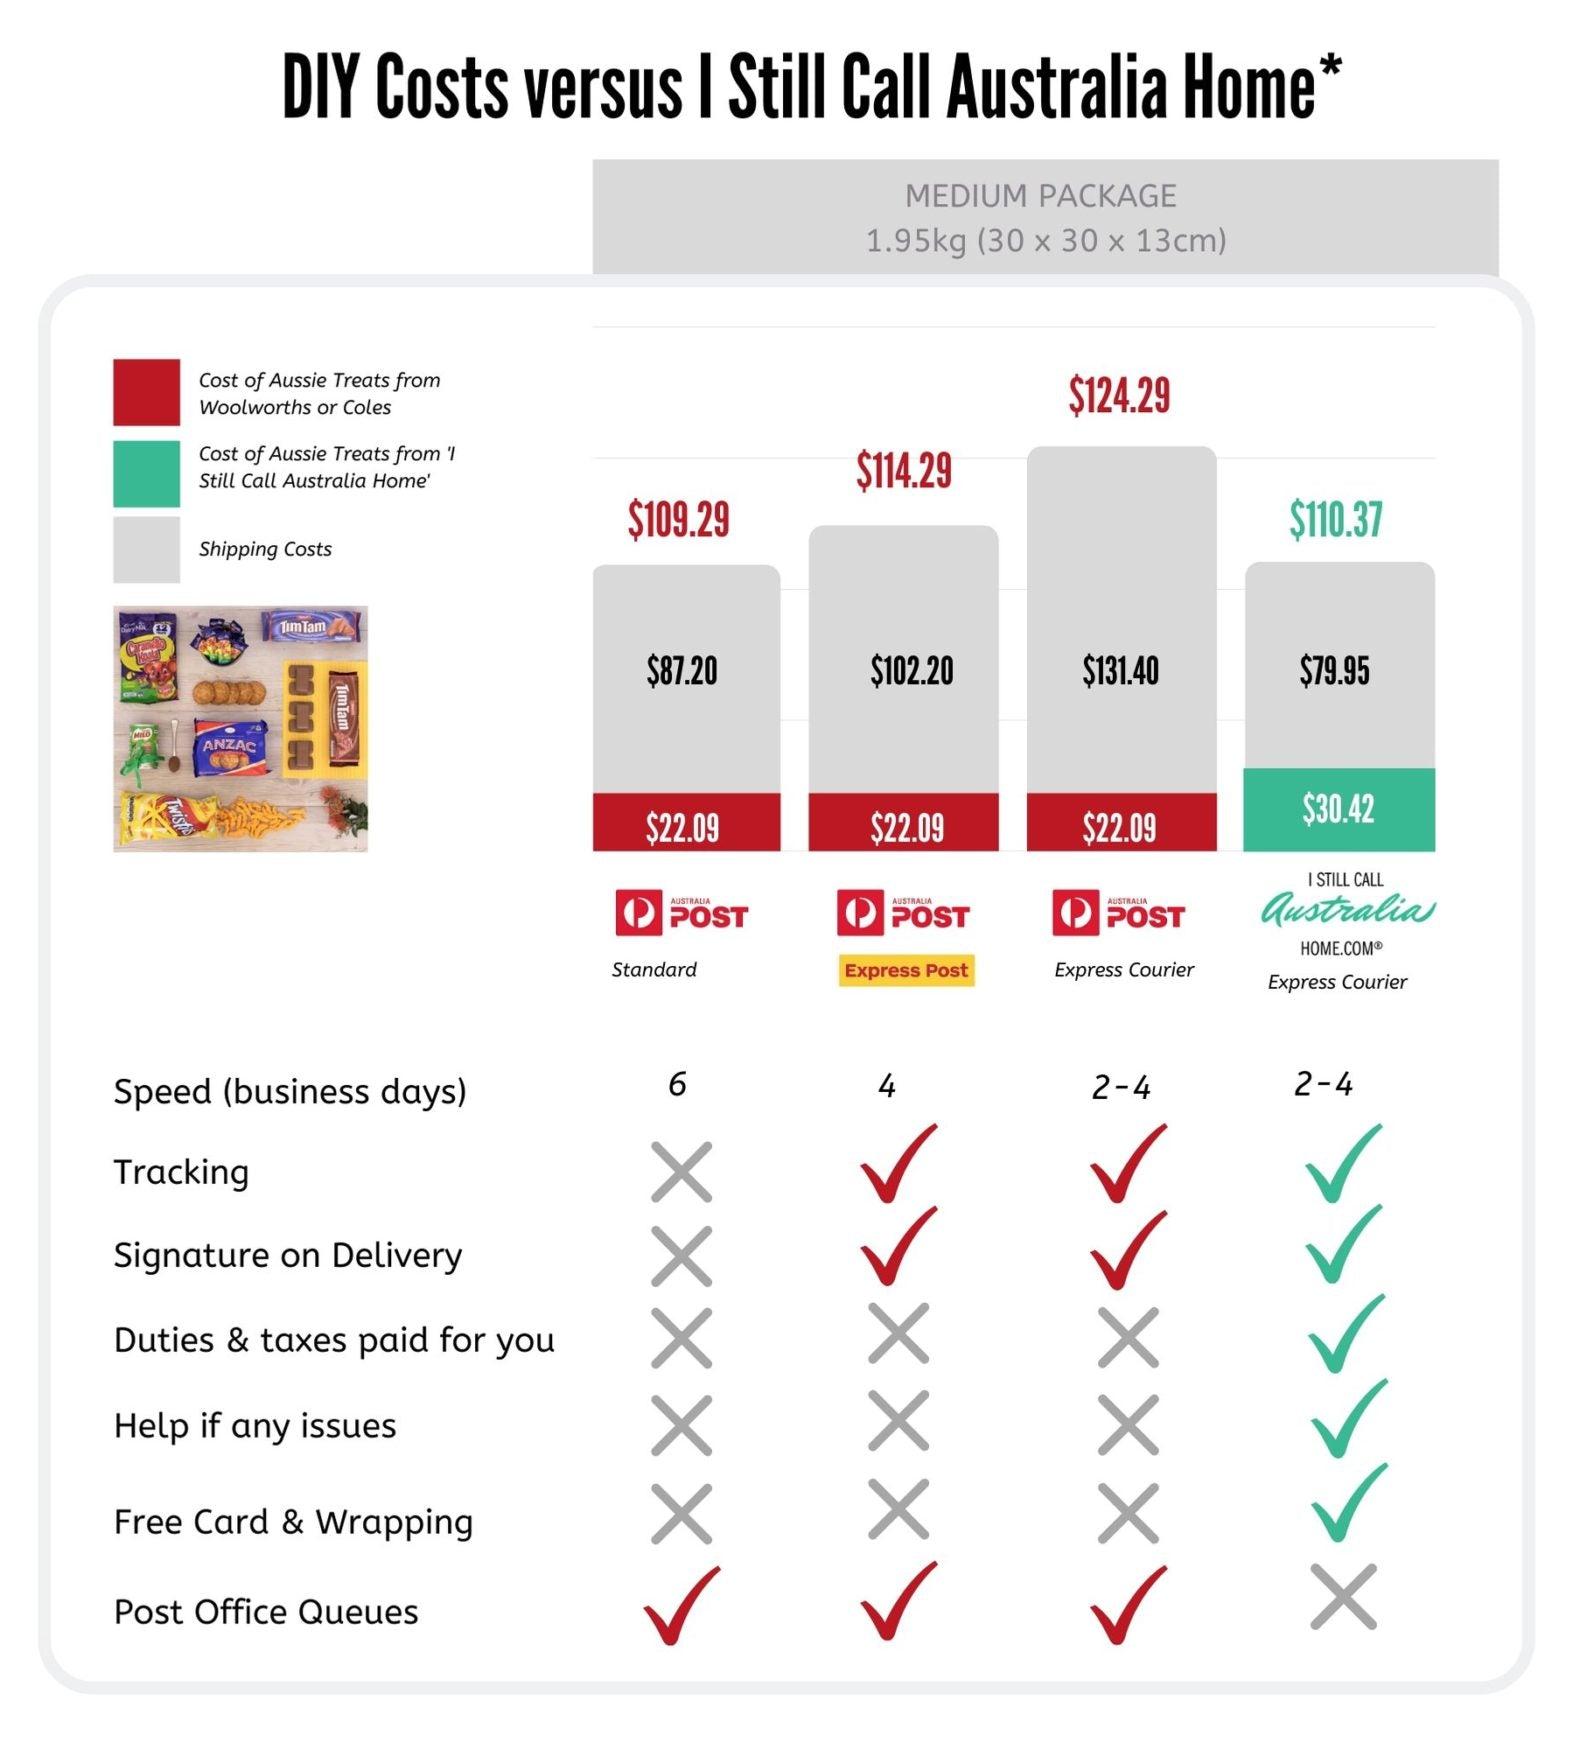 compare cost sending gift to UK versus Australia Post